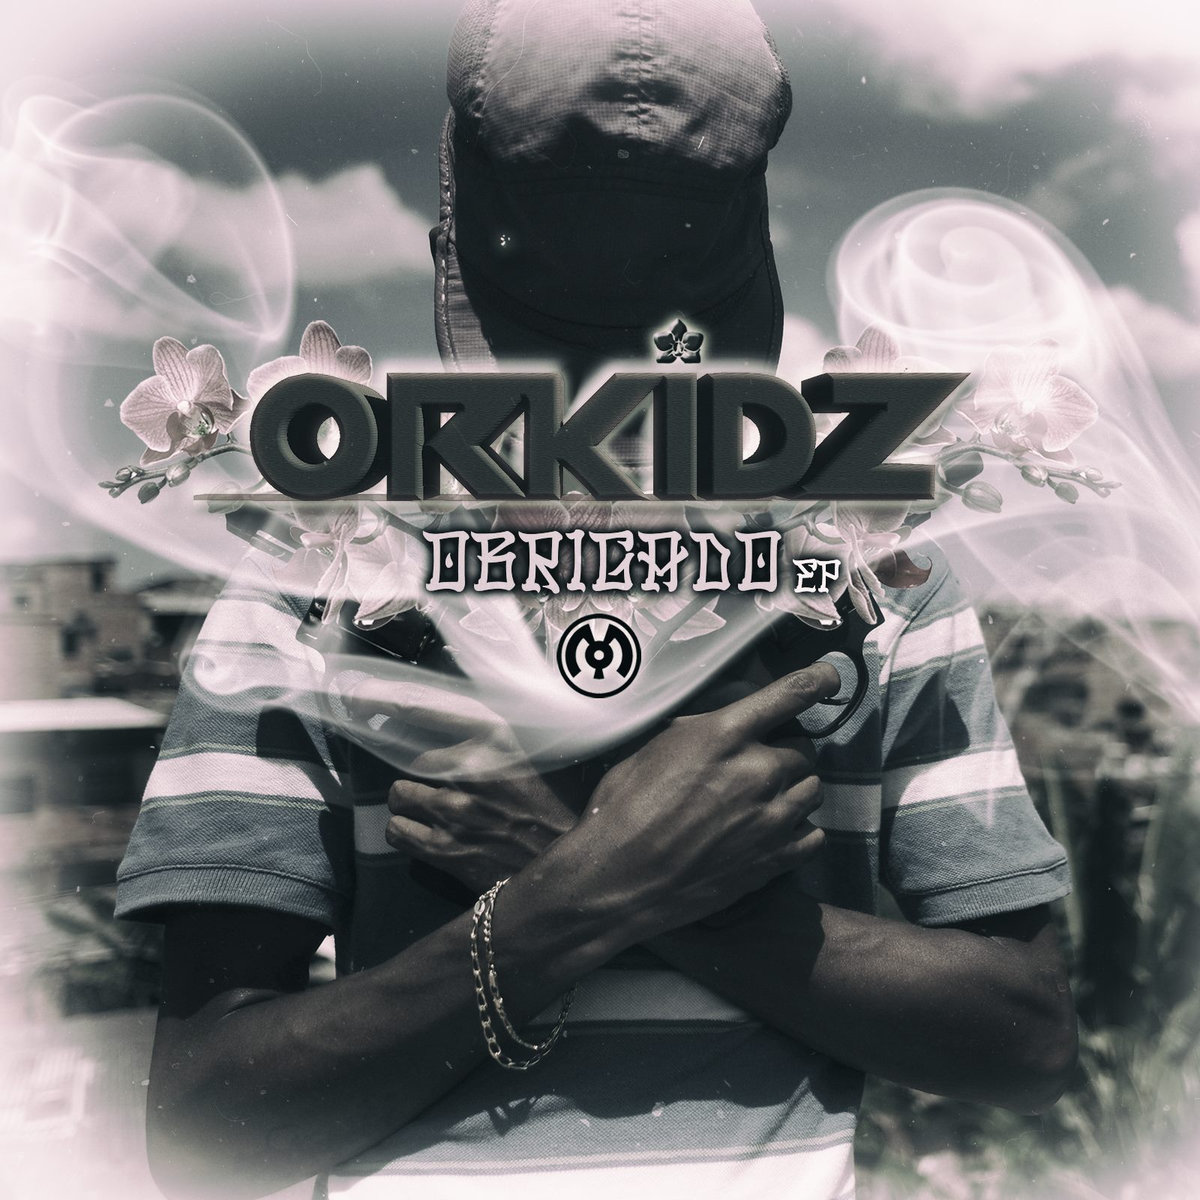 Orkidz - City of Men @ 'Obrigado' album (electronic, dubstep)